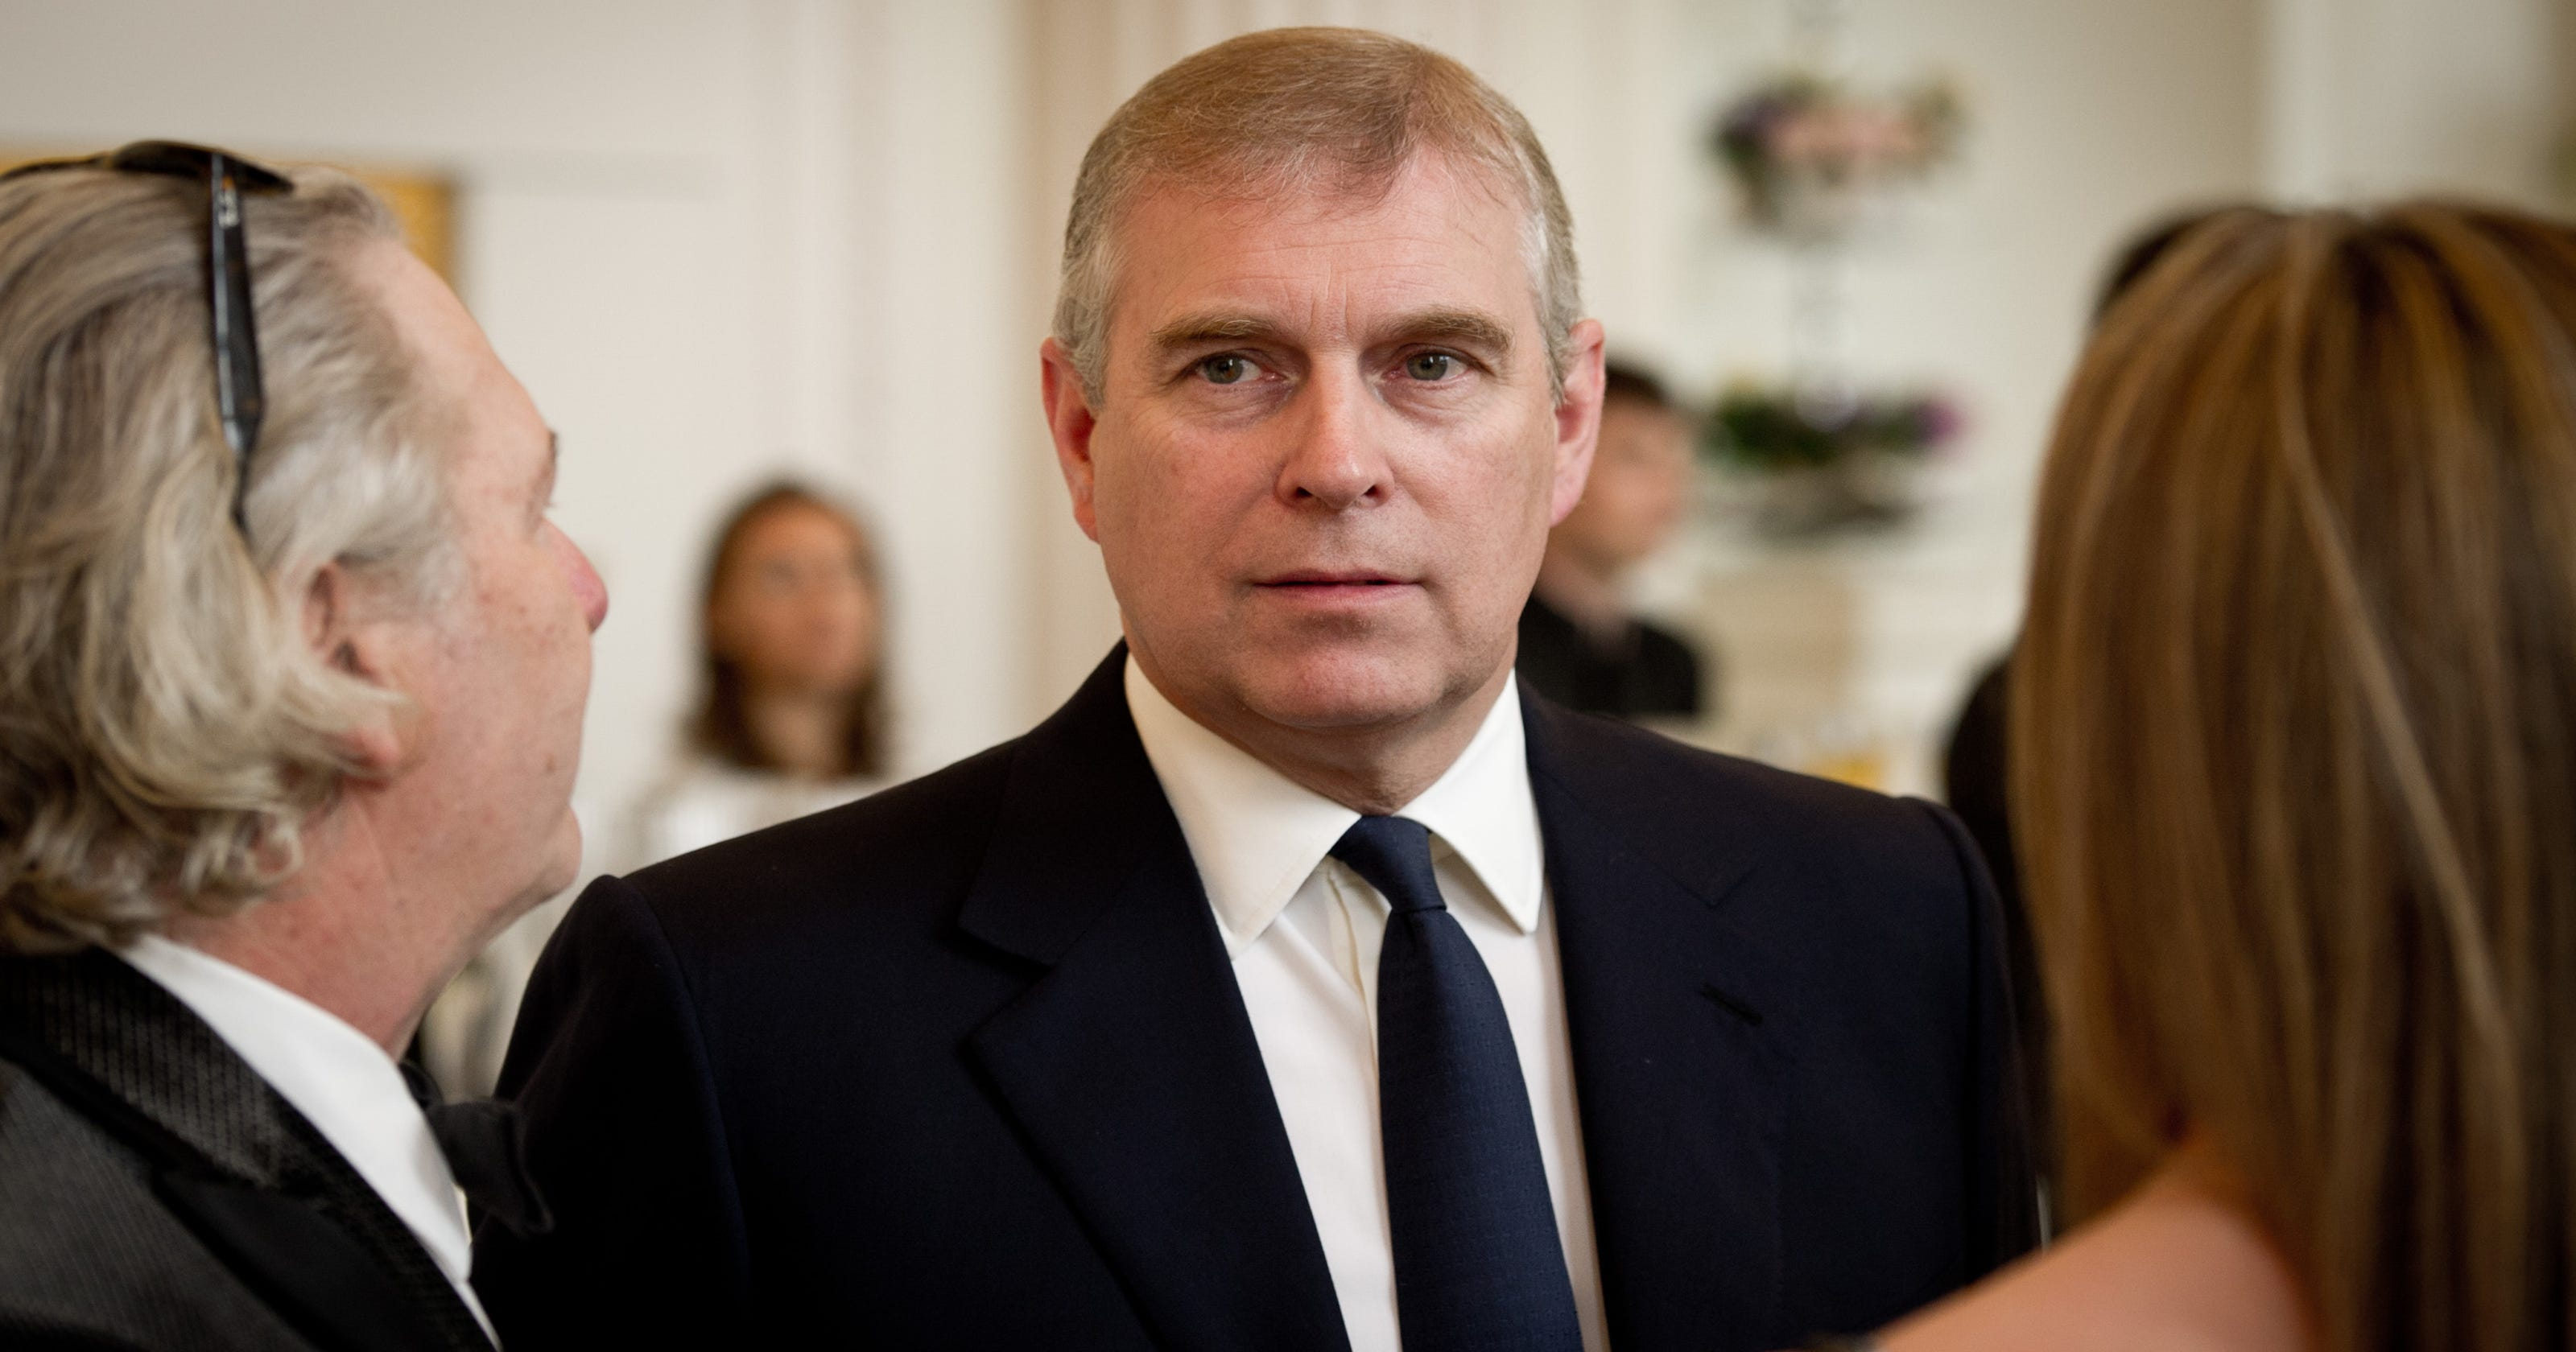 prince andrew - HD1484×991